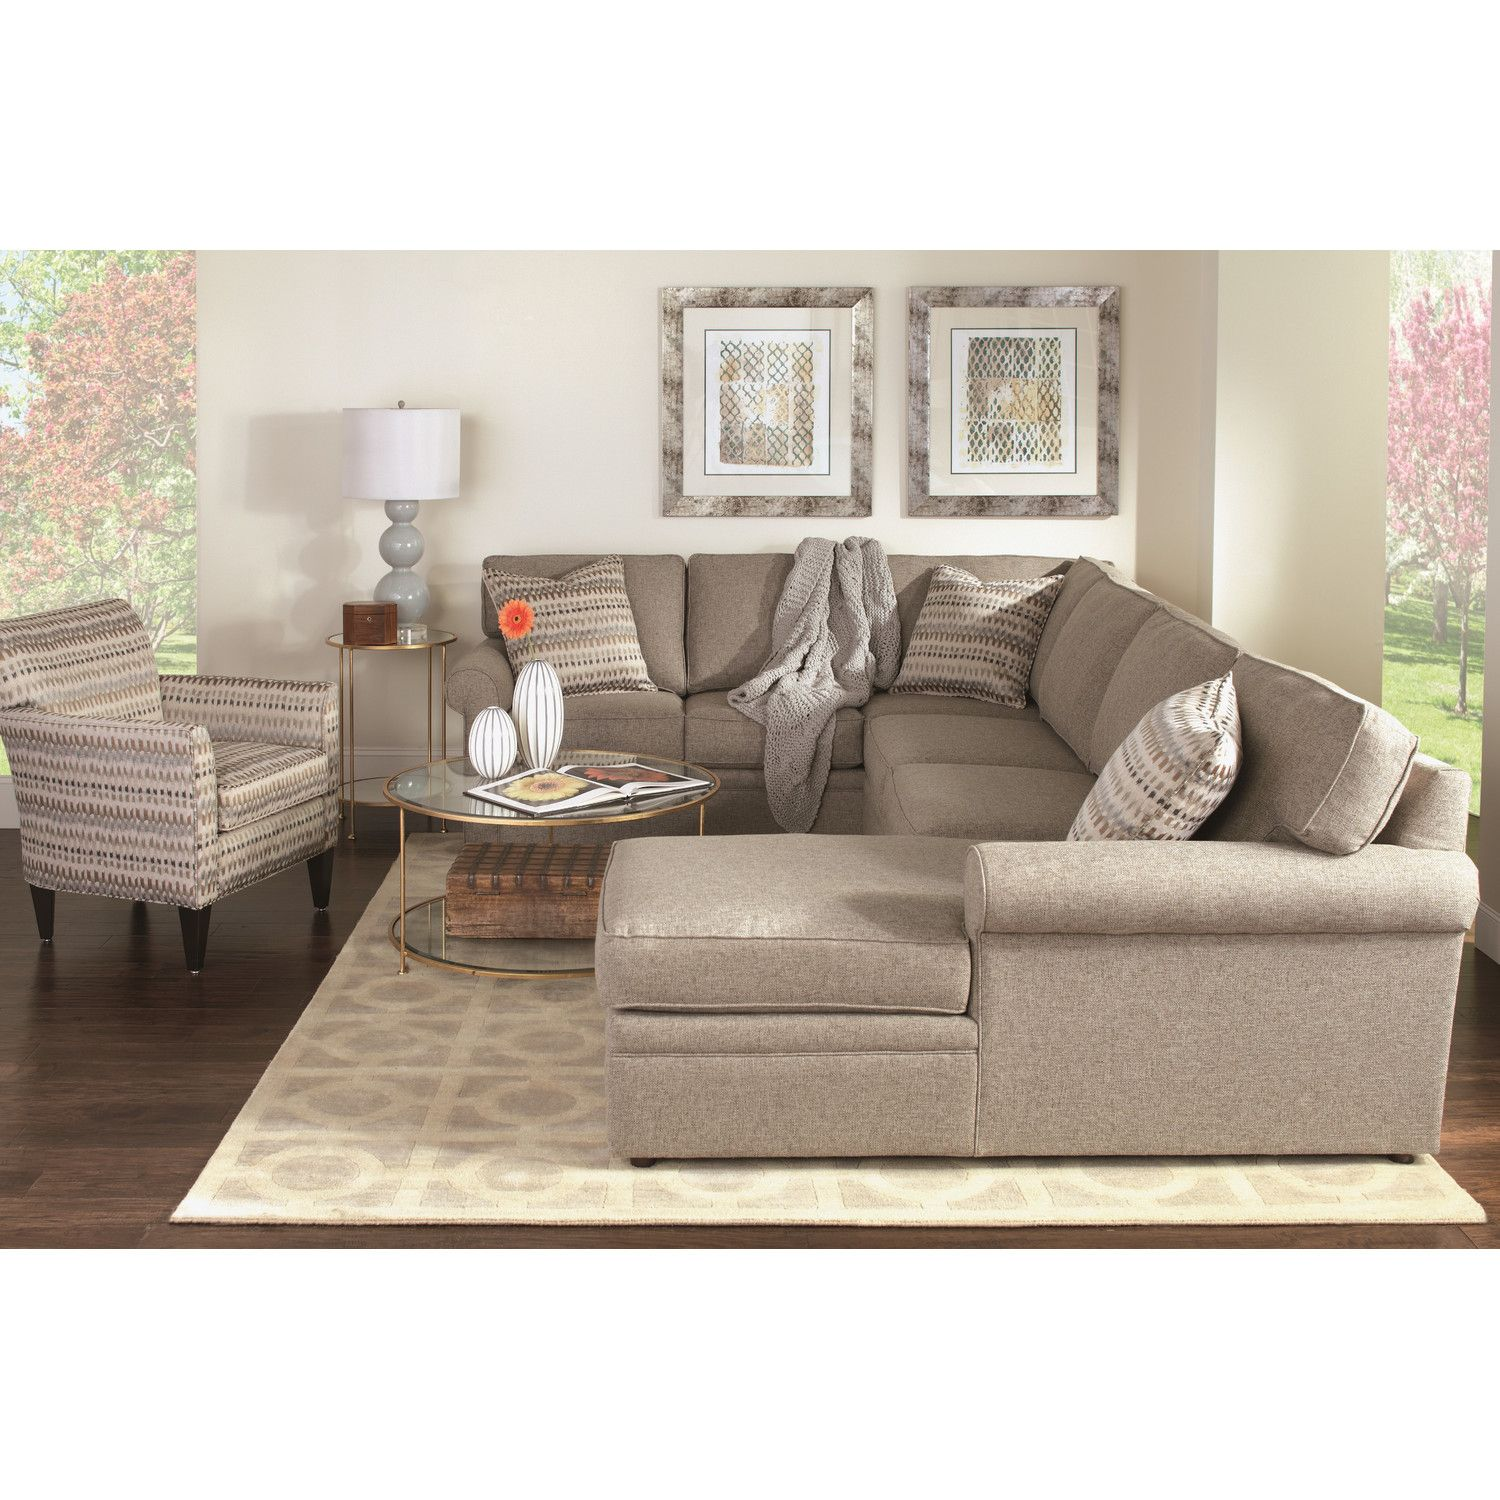 Rowe Furniture Brentwood Sectional